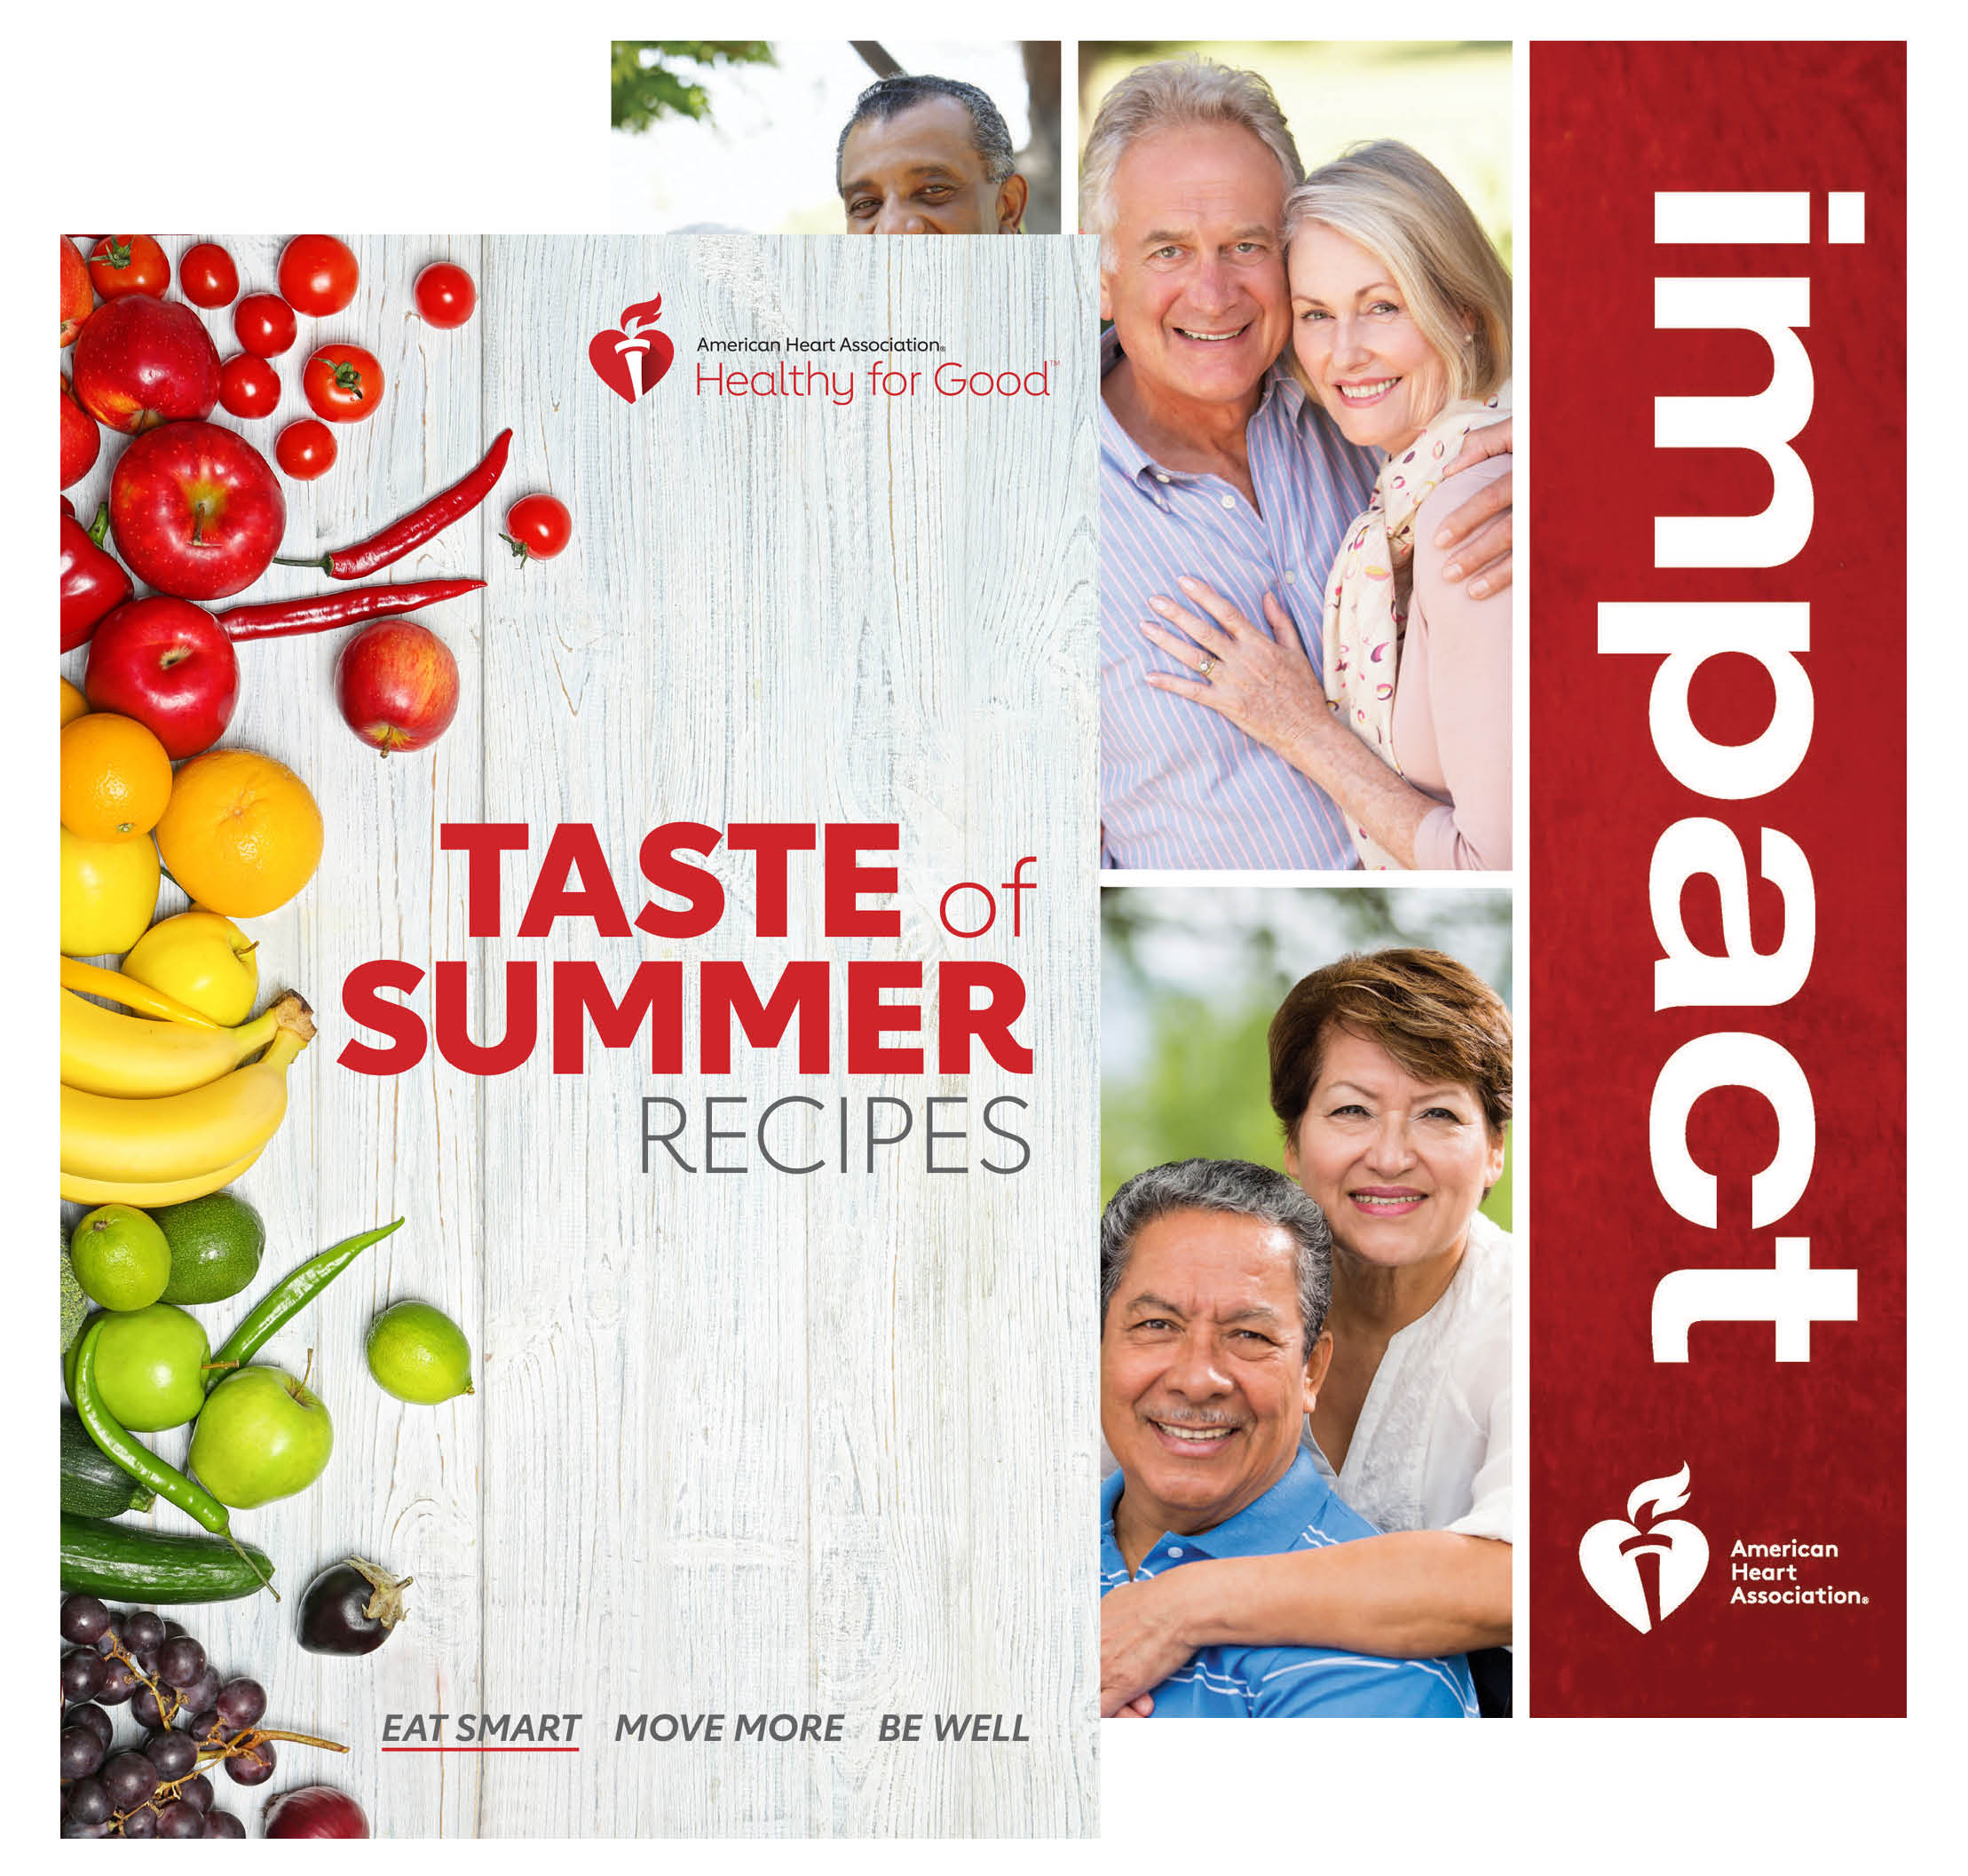 Impact Guide and Taste of Summer Recipe Booklet